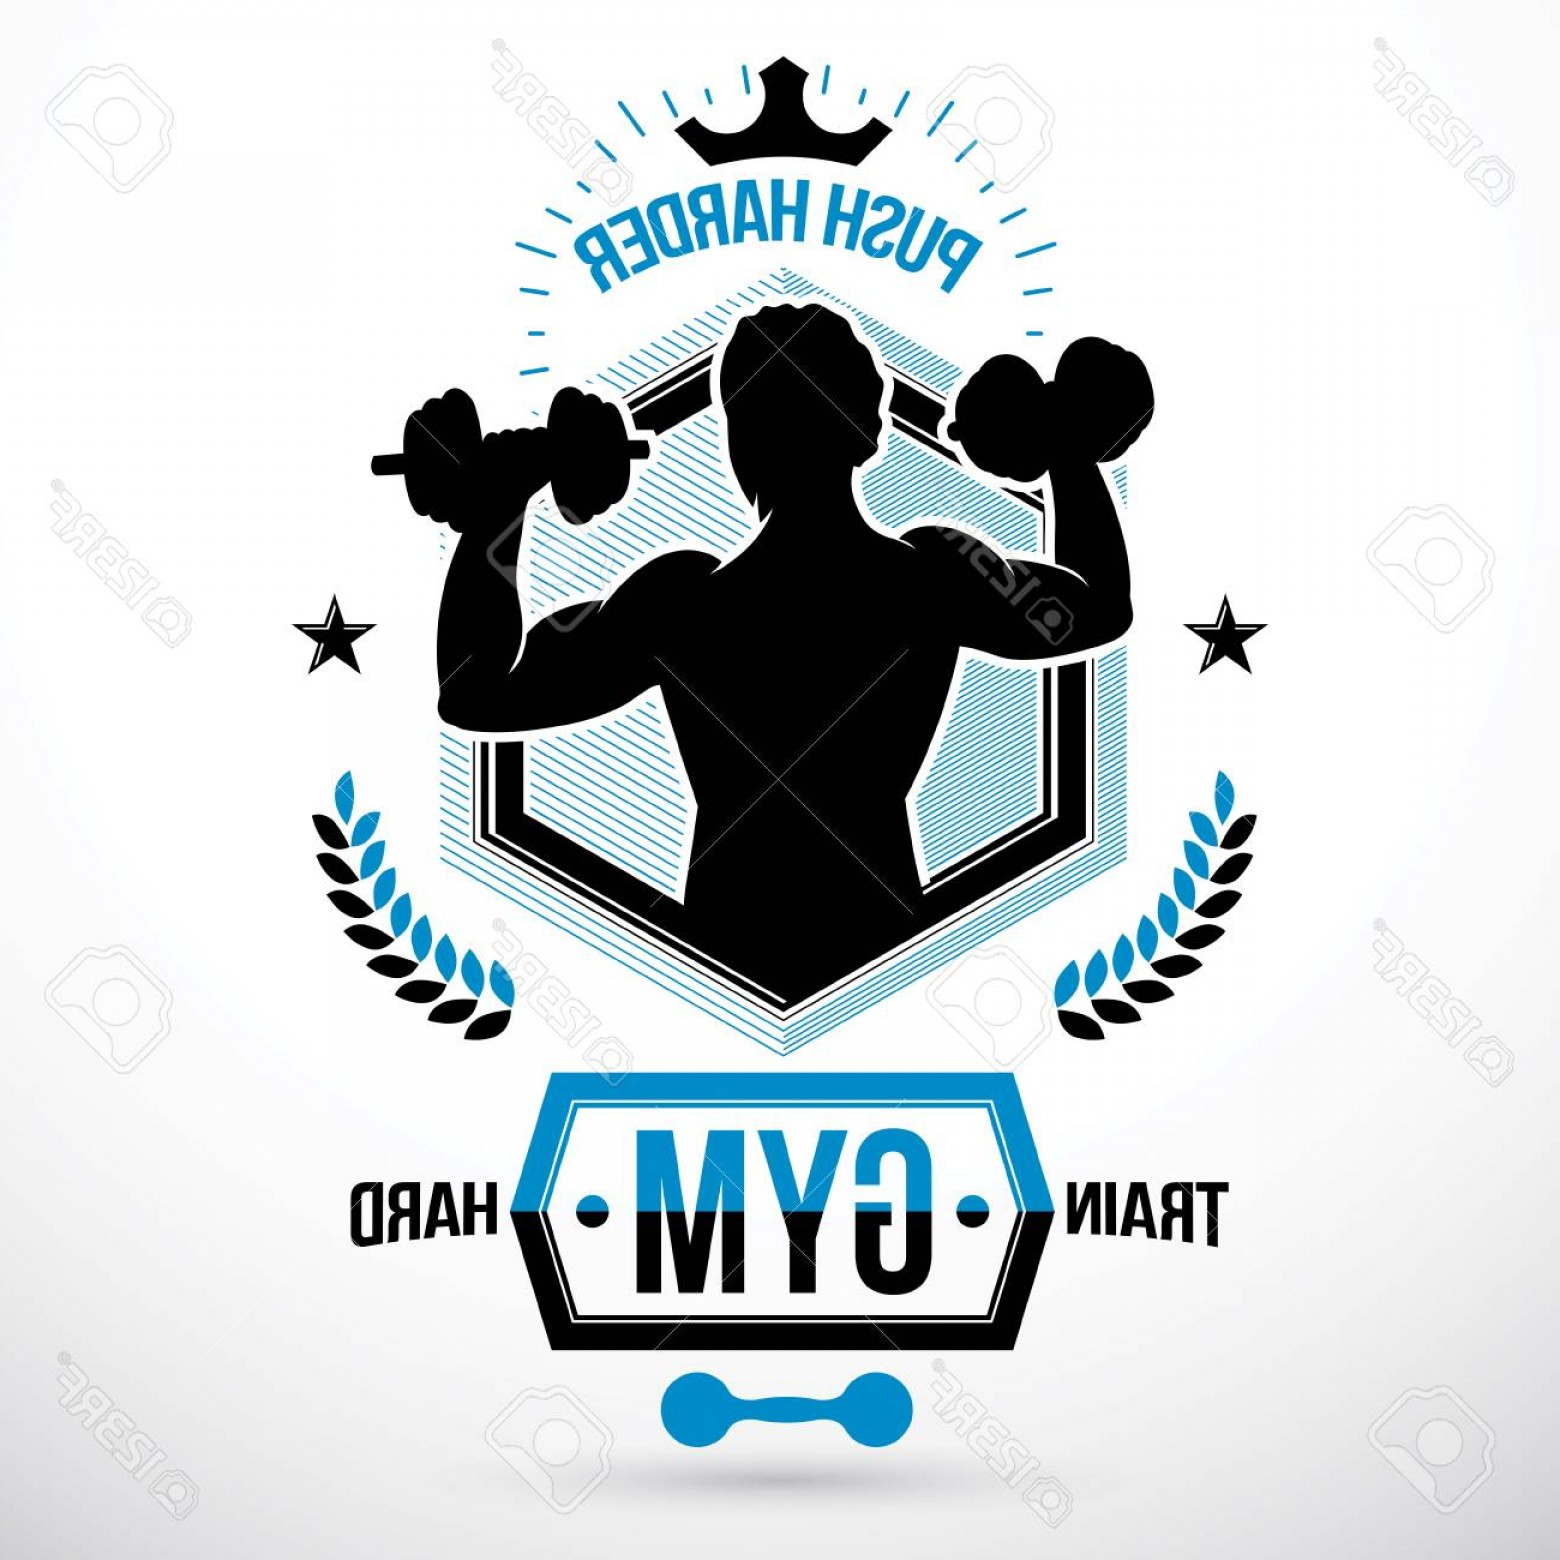 Champions Gym Vector: Photostock Vector Vector Symbol Composed Using Muscular Athlete Holding Dumbbells Sport Equipment Strong Man Champions